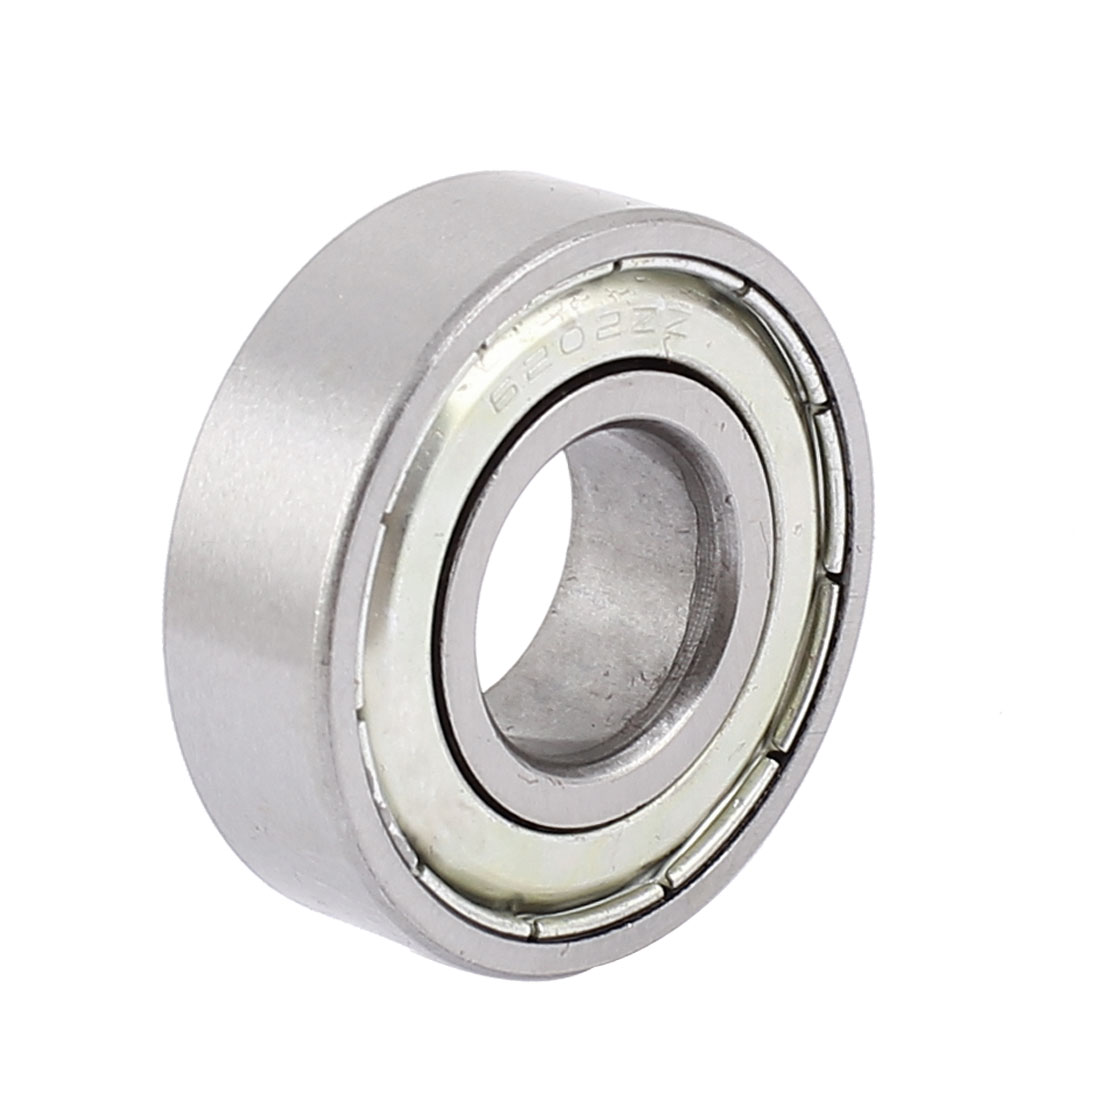 Metal 35mm x 15mm x 11mm Rod Cam Needle Roller Groove Ball Bearing